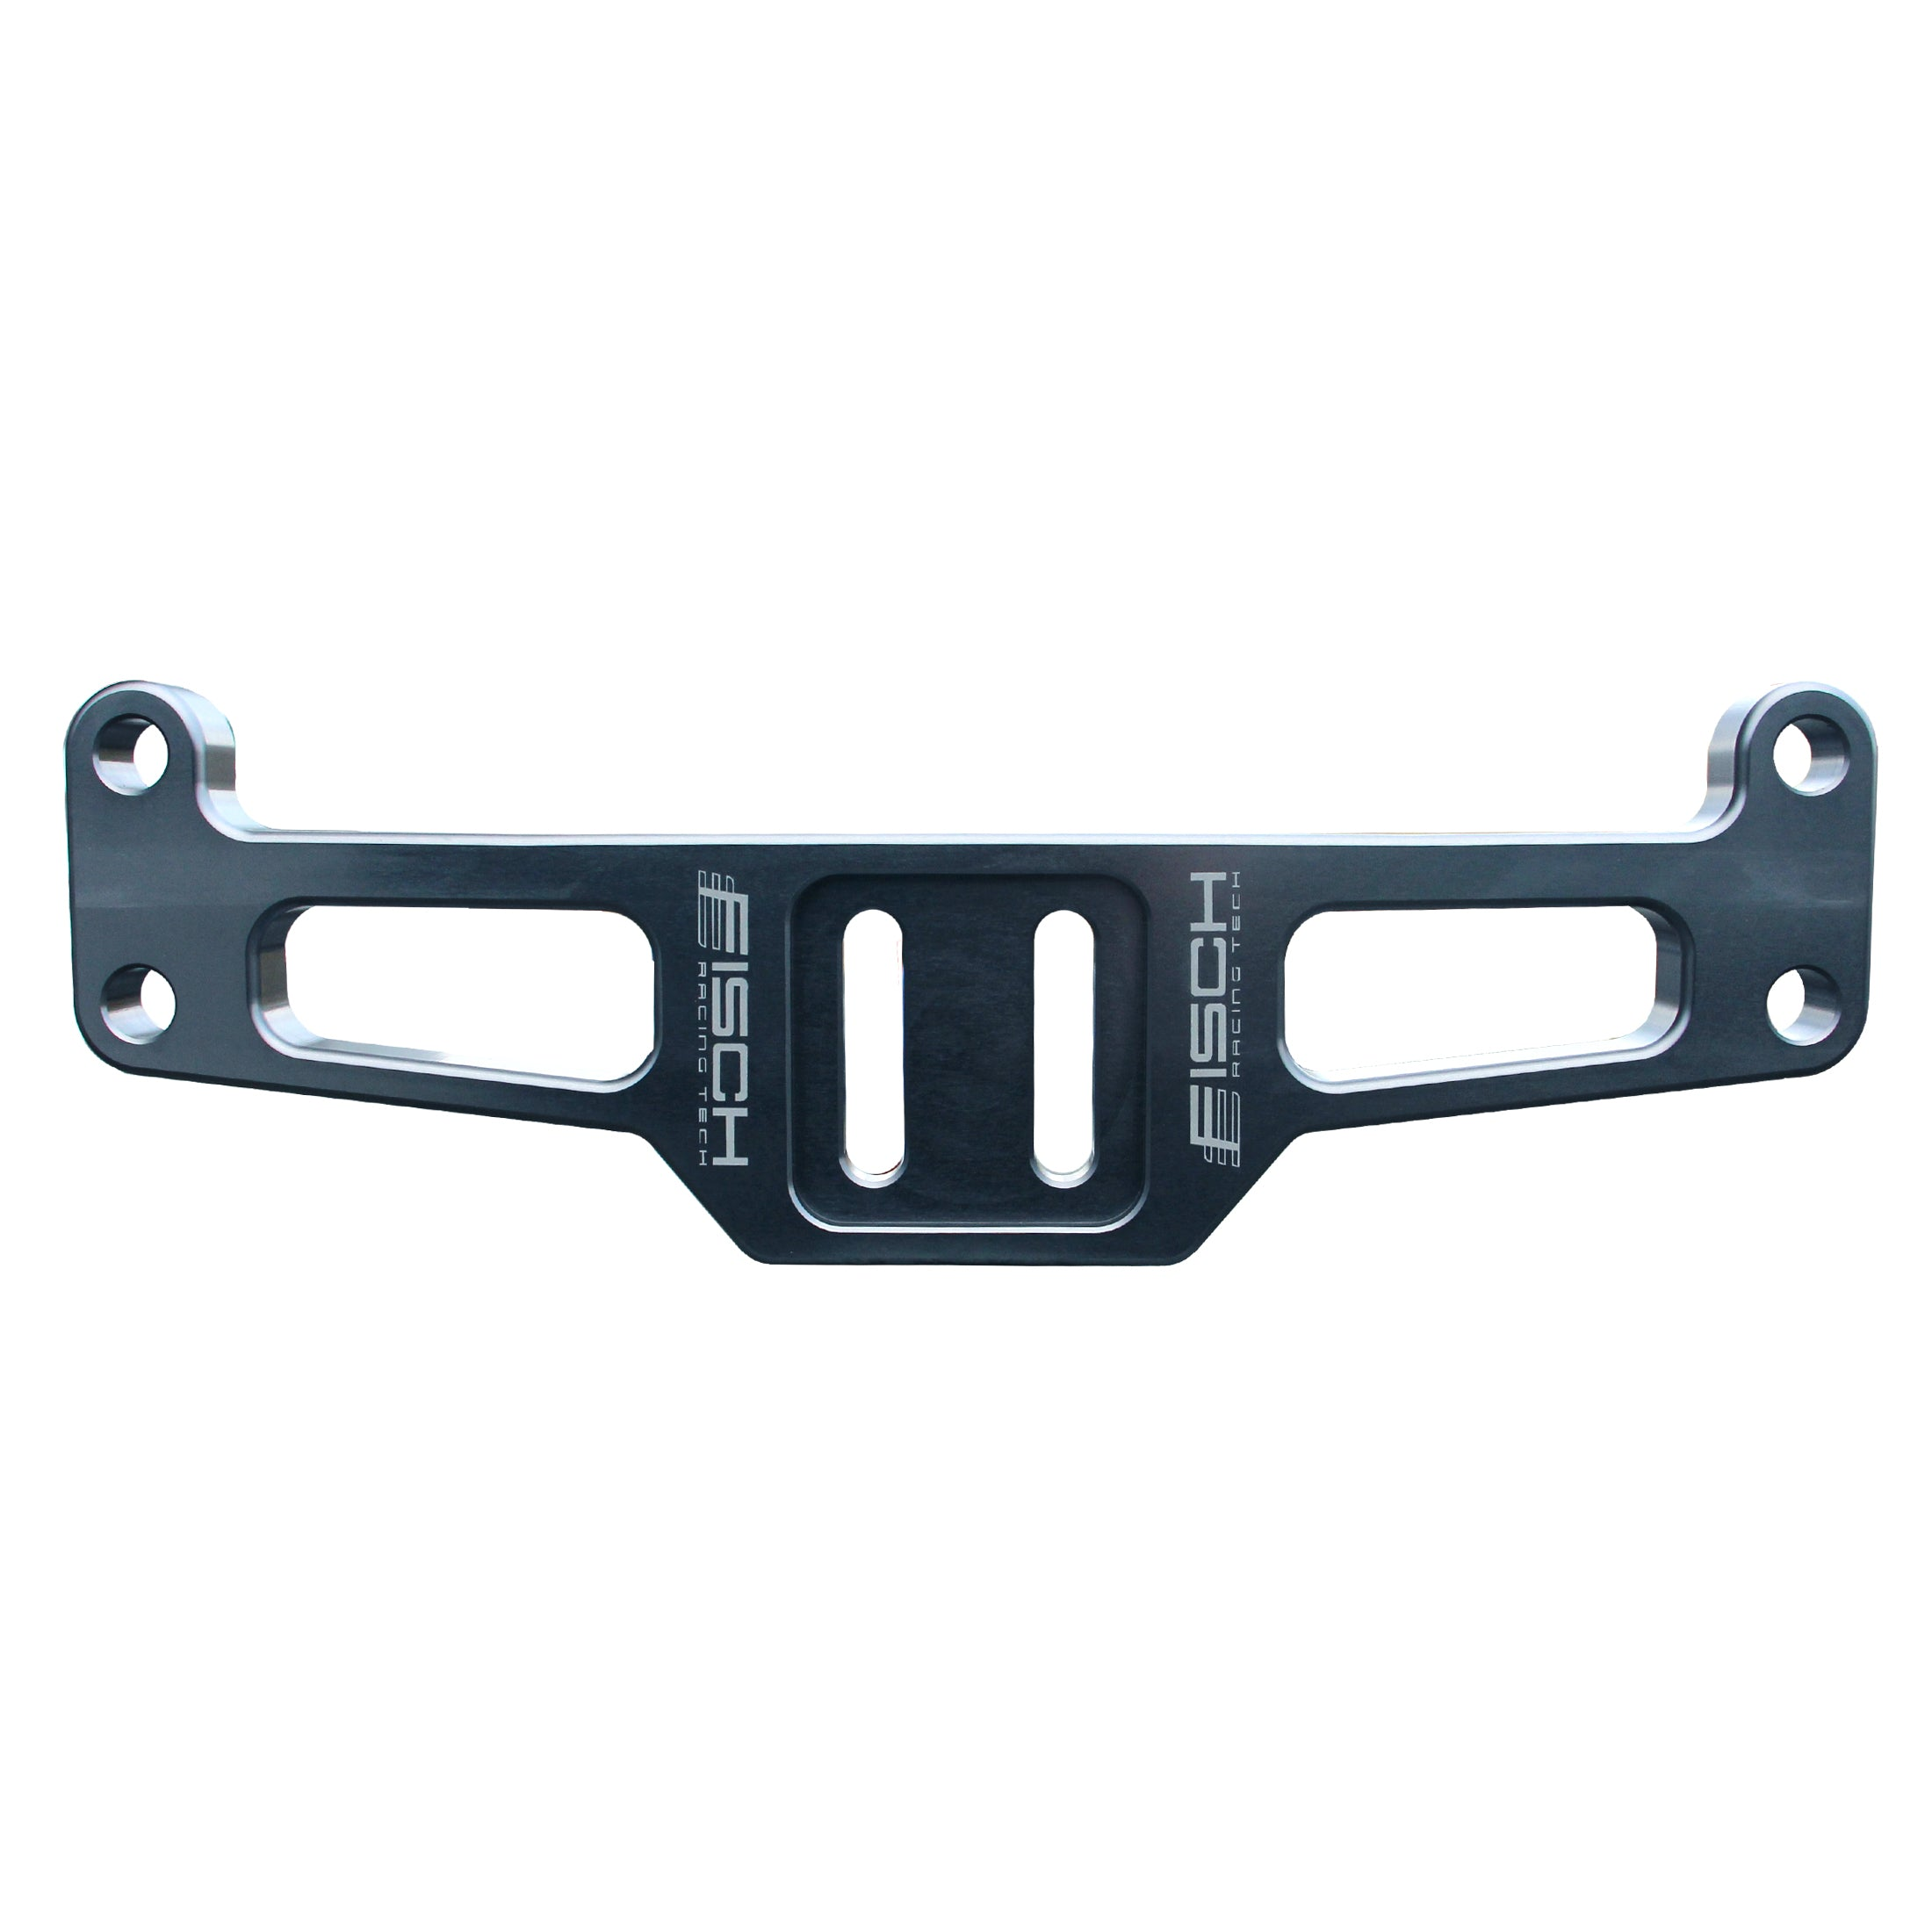 Toyota Transmission Crossmember (flat style)